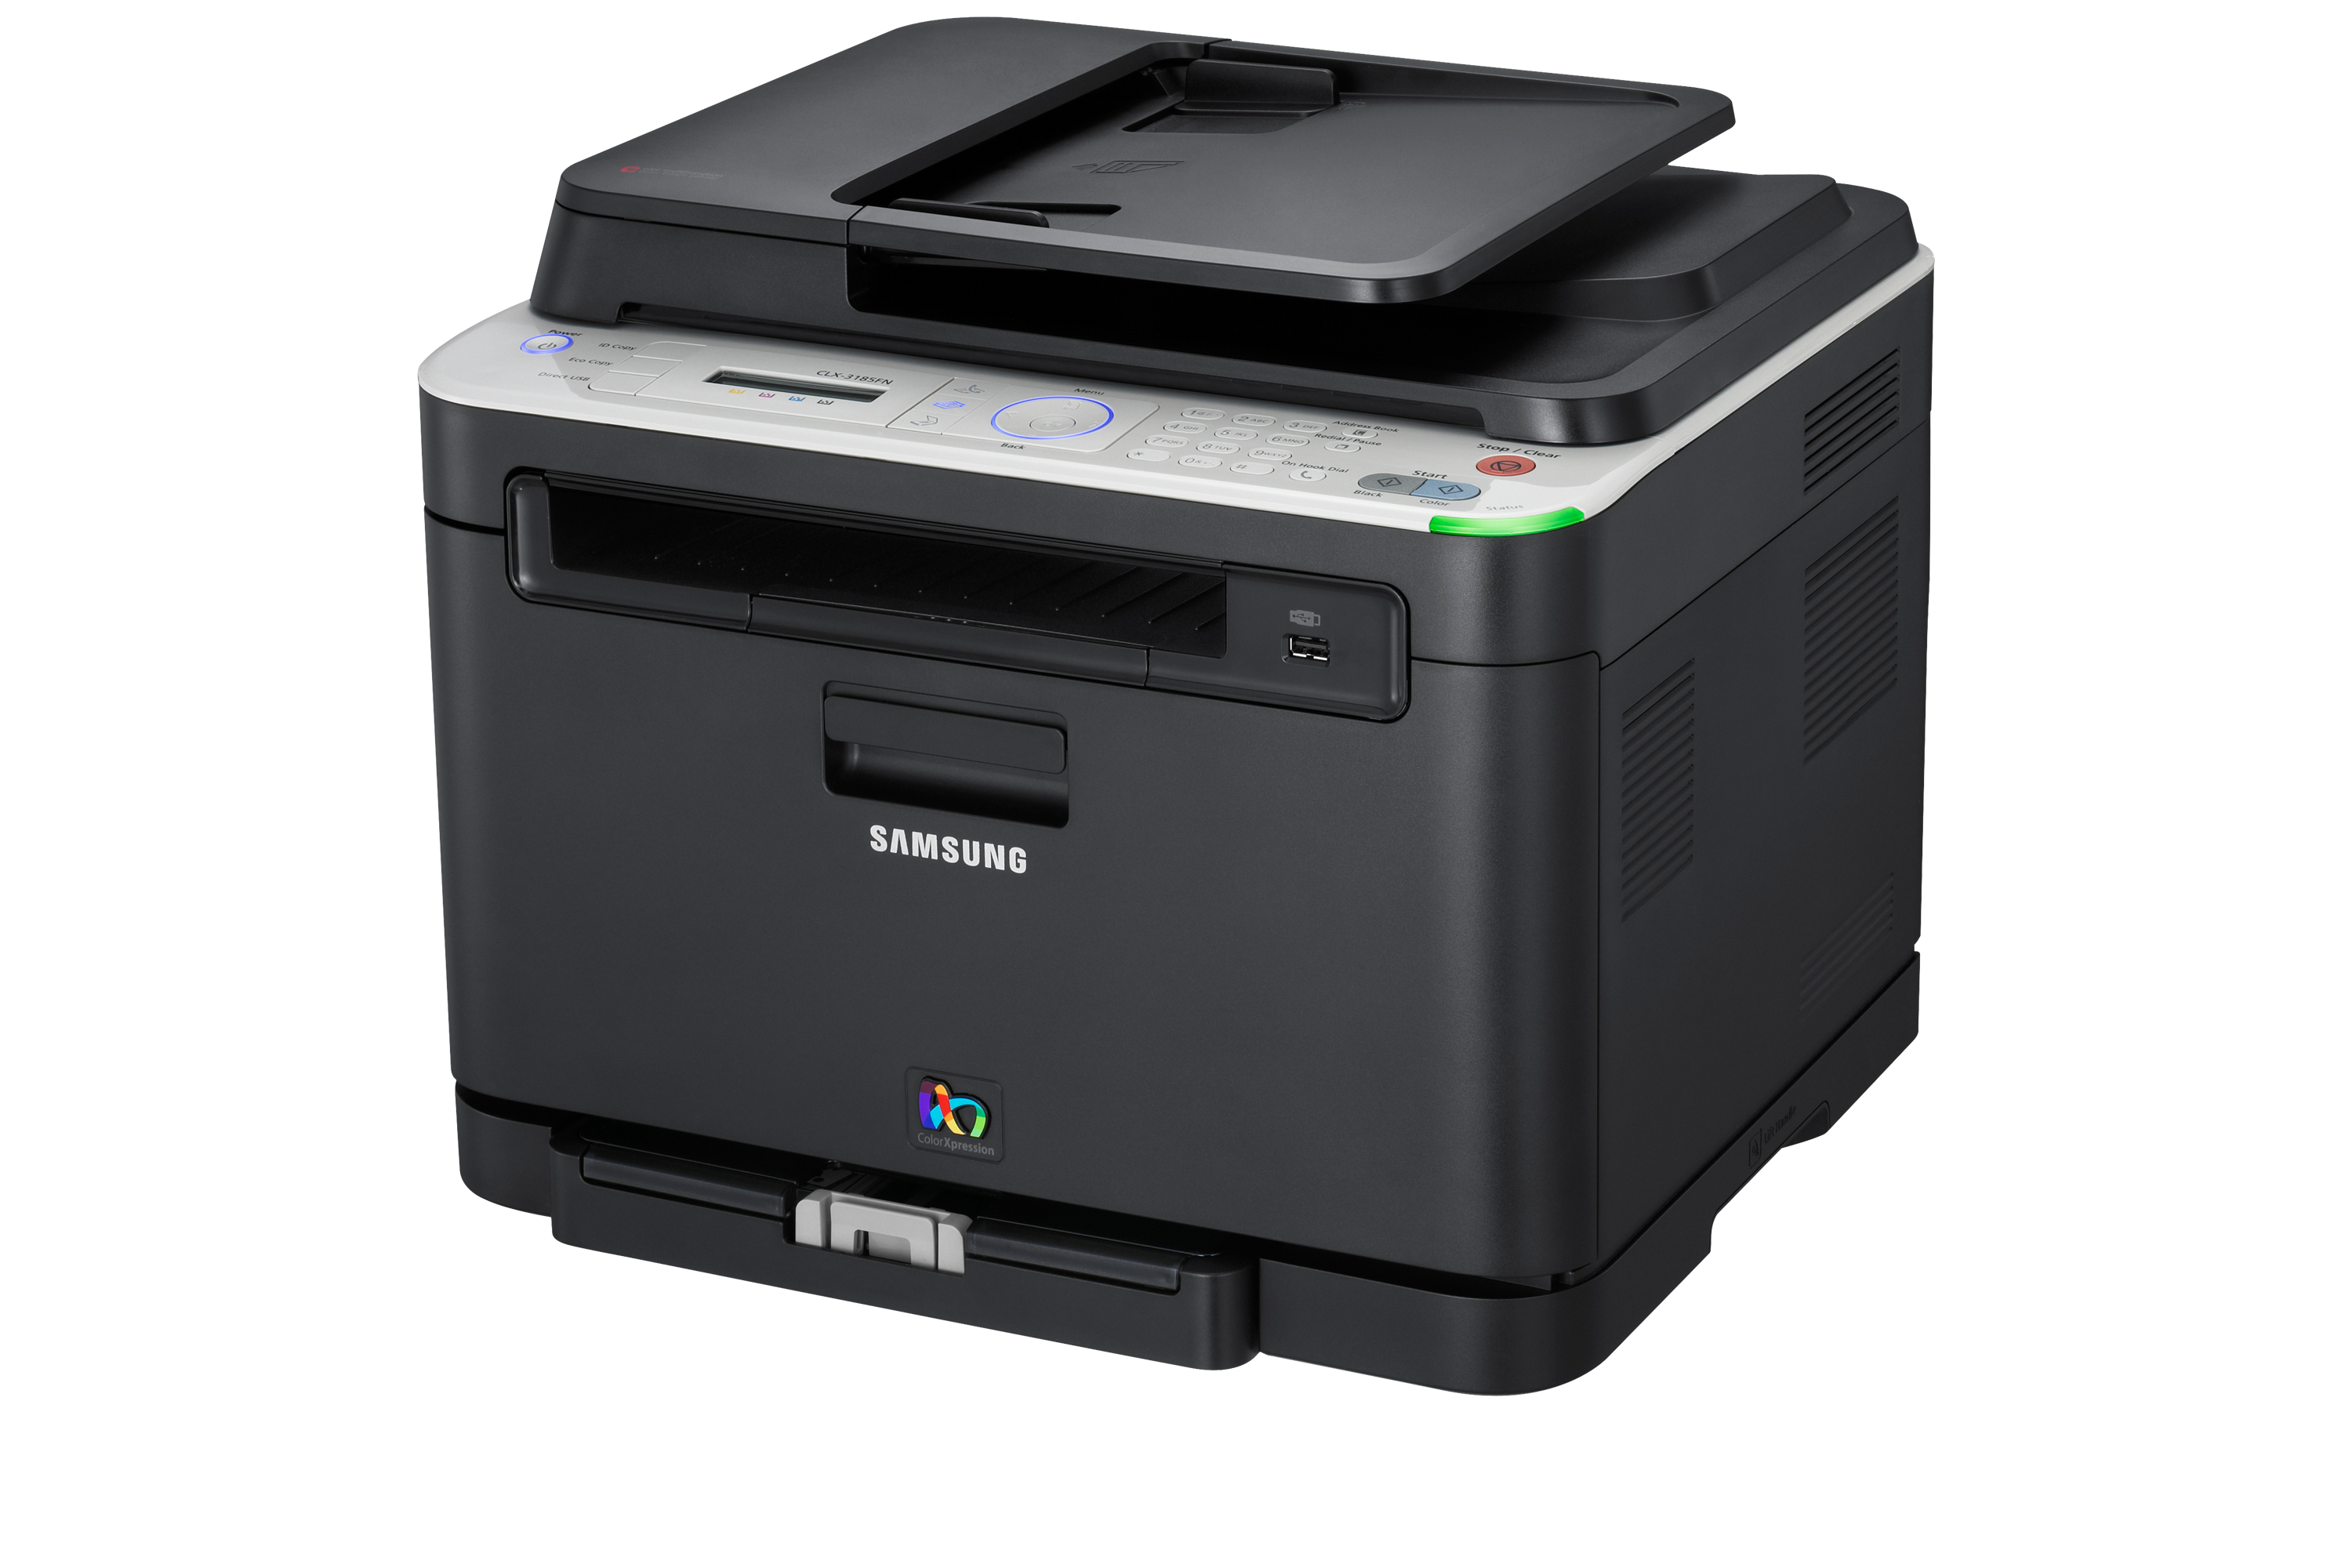 Get the best deals on computer printers, ink, and accessories form TigerDirect. We have thousands of options to choose from for both homes and offices, including laser printers, inkjet printers, large format printers, and many more.